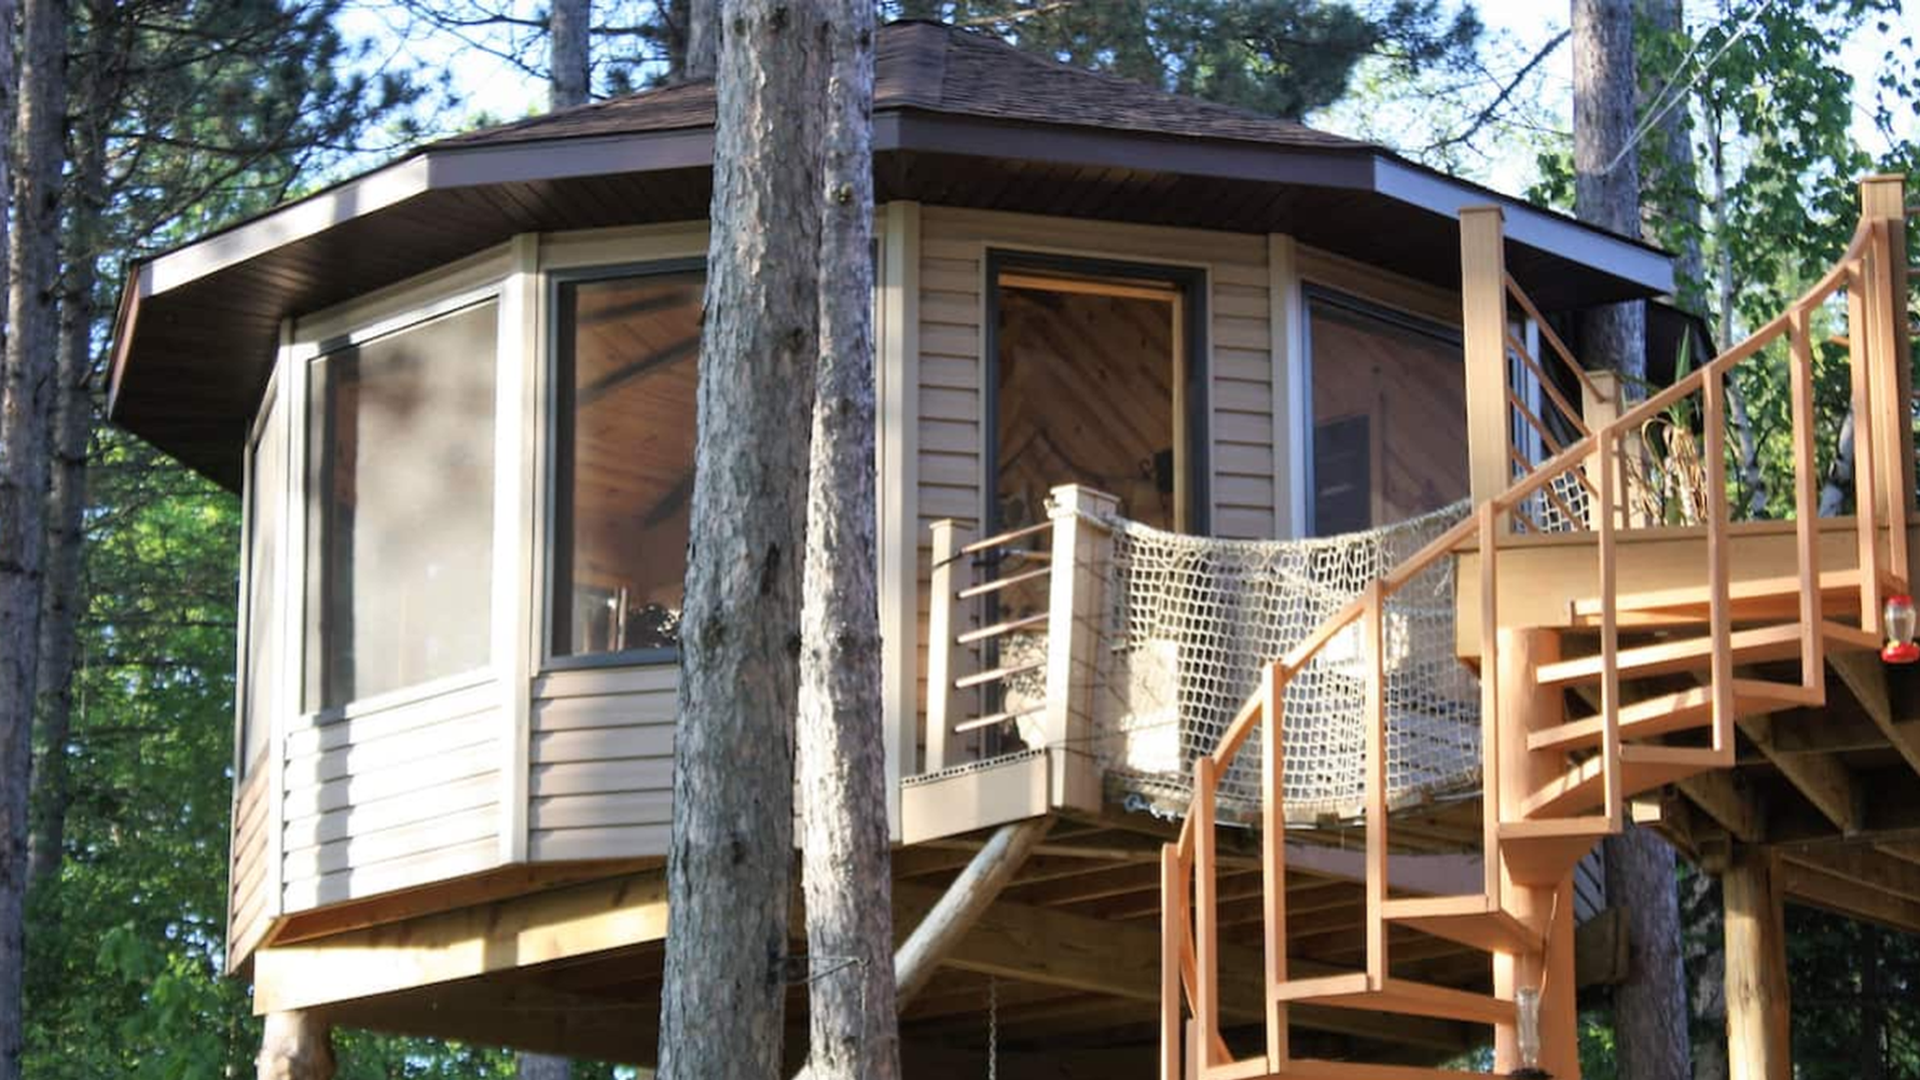 A Minnesota treehouse rental with a spiral staircase.